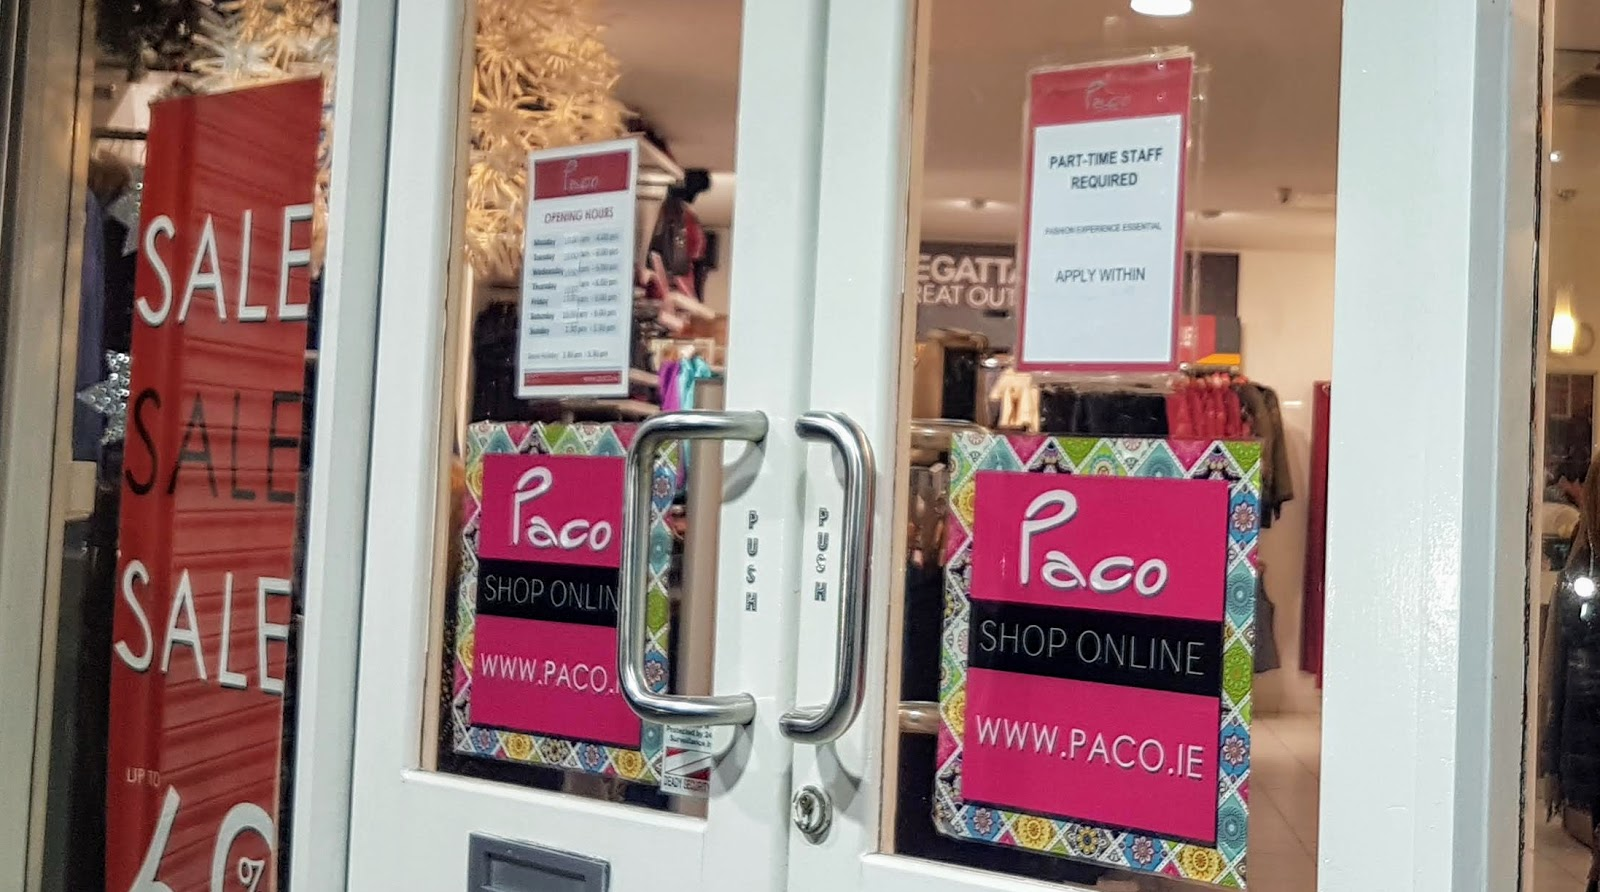 shop doors with opening hours sign at Paco Irish-fashion store in Galway city